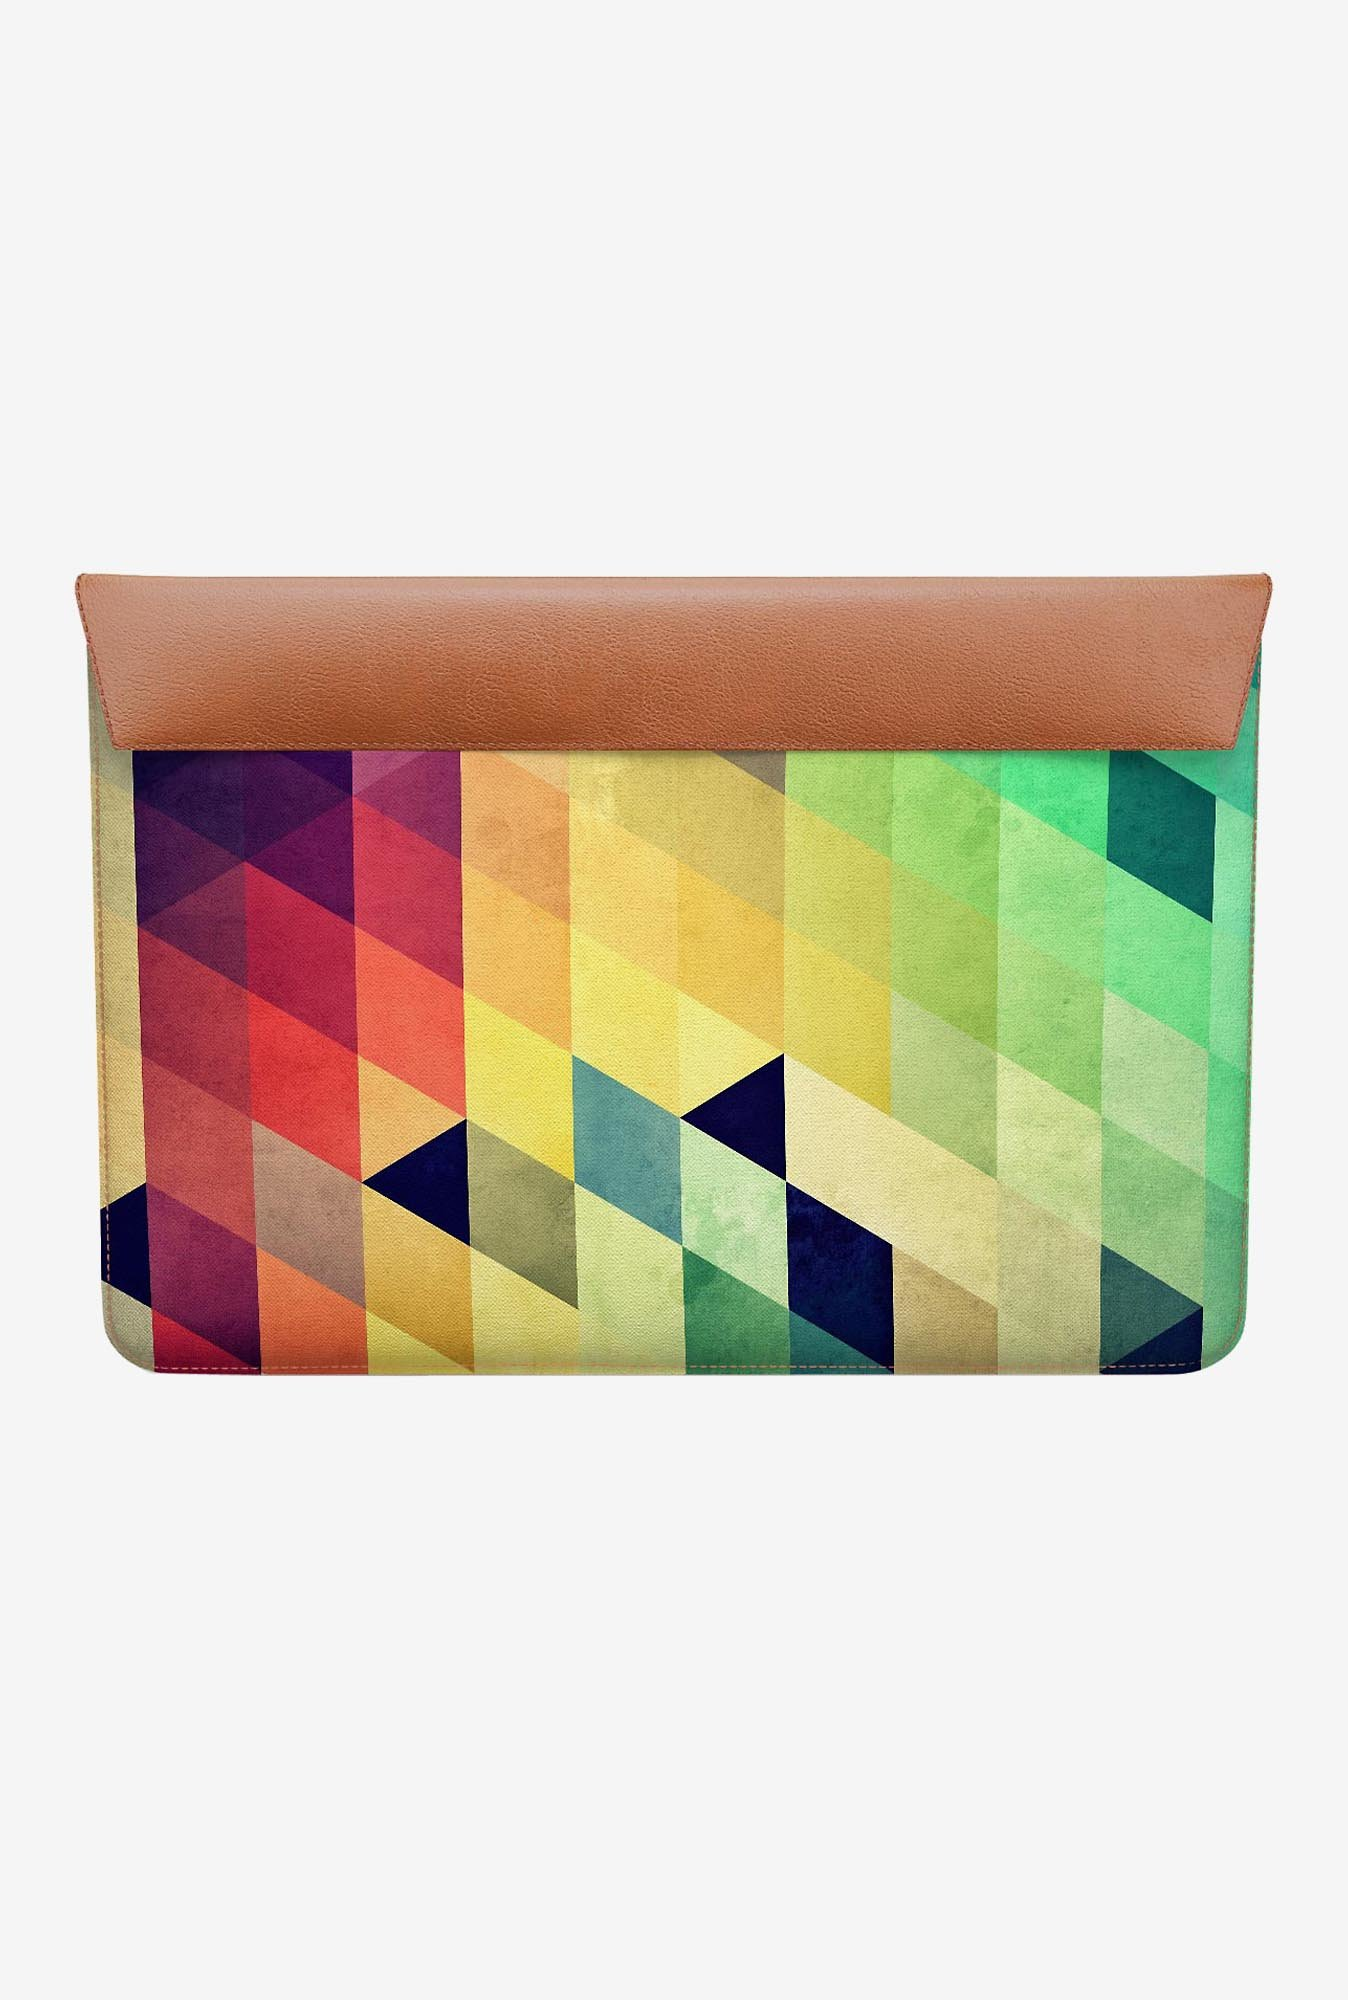 DailyObjects Xyv MacBook Air 11 Envelope Sleeve